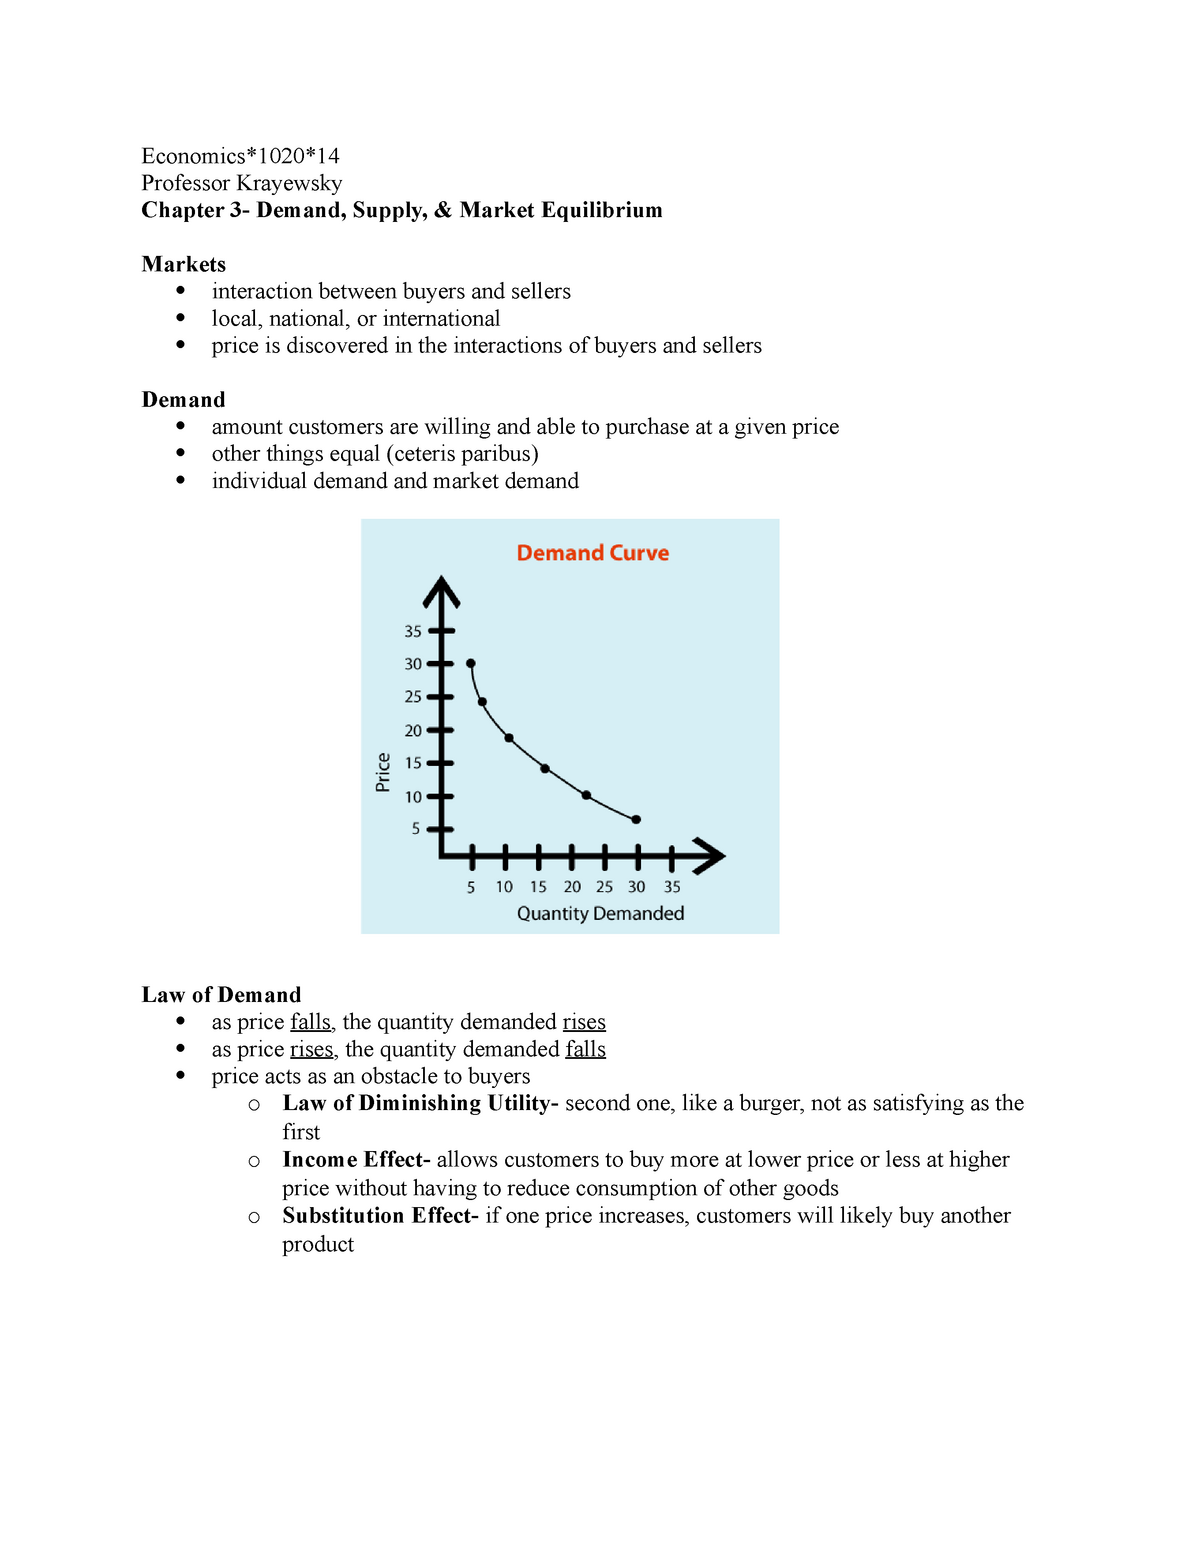 Chapter 3 Notes- Demand Supply and Market Equilibrium - StuDocu